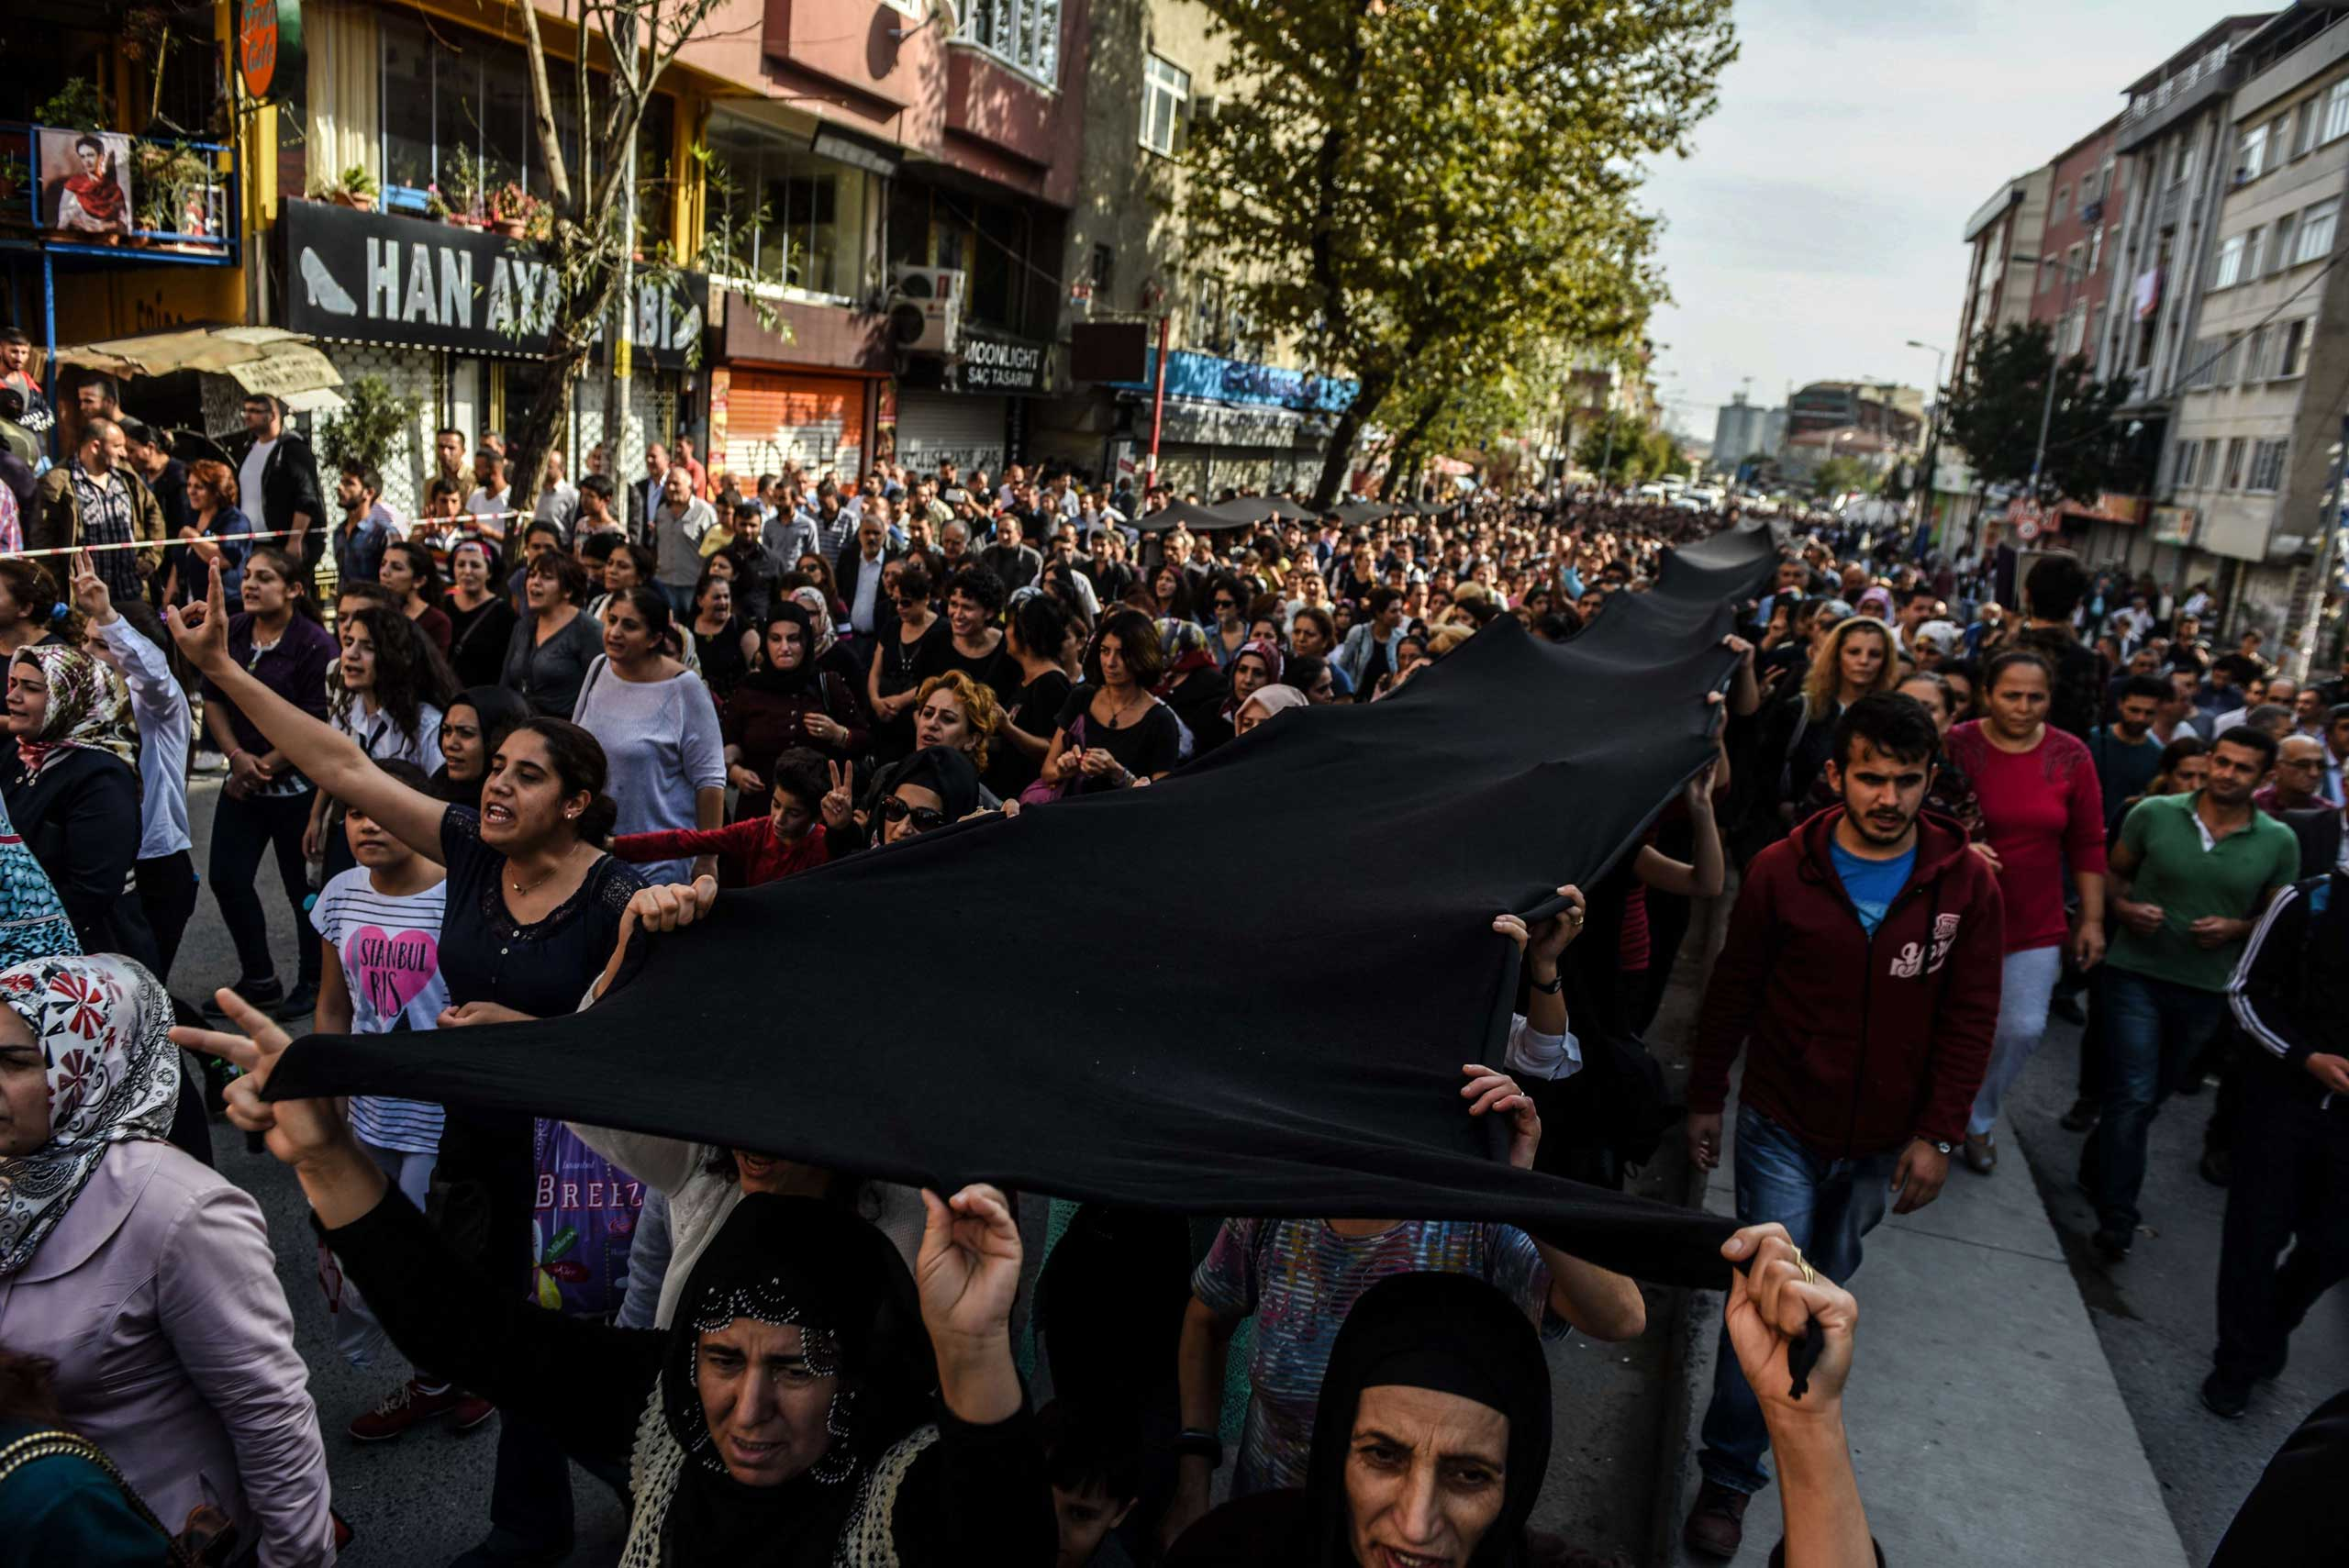 People march behind a funeral vehicle carrying the coffin of Fatma Esen, one of the victims of the twin bombings in Ankara, during her funeral in the Gazi district of Istanbul, on Oct. 12, 2015.